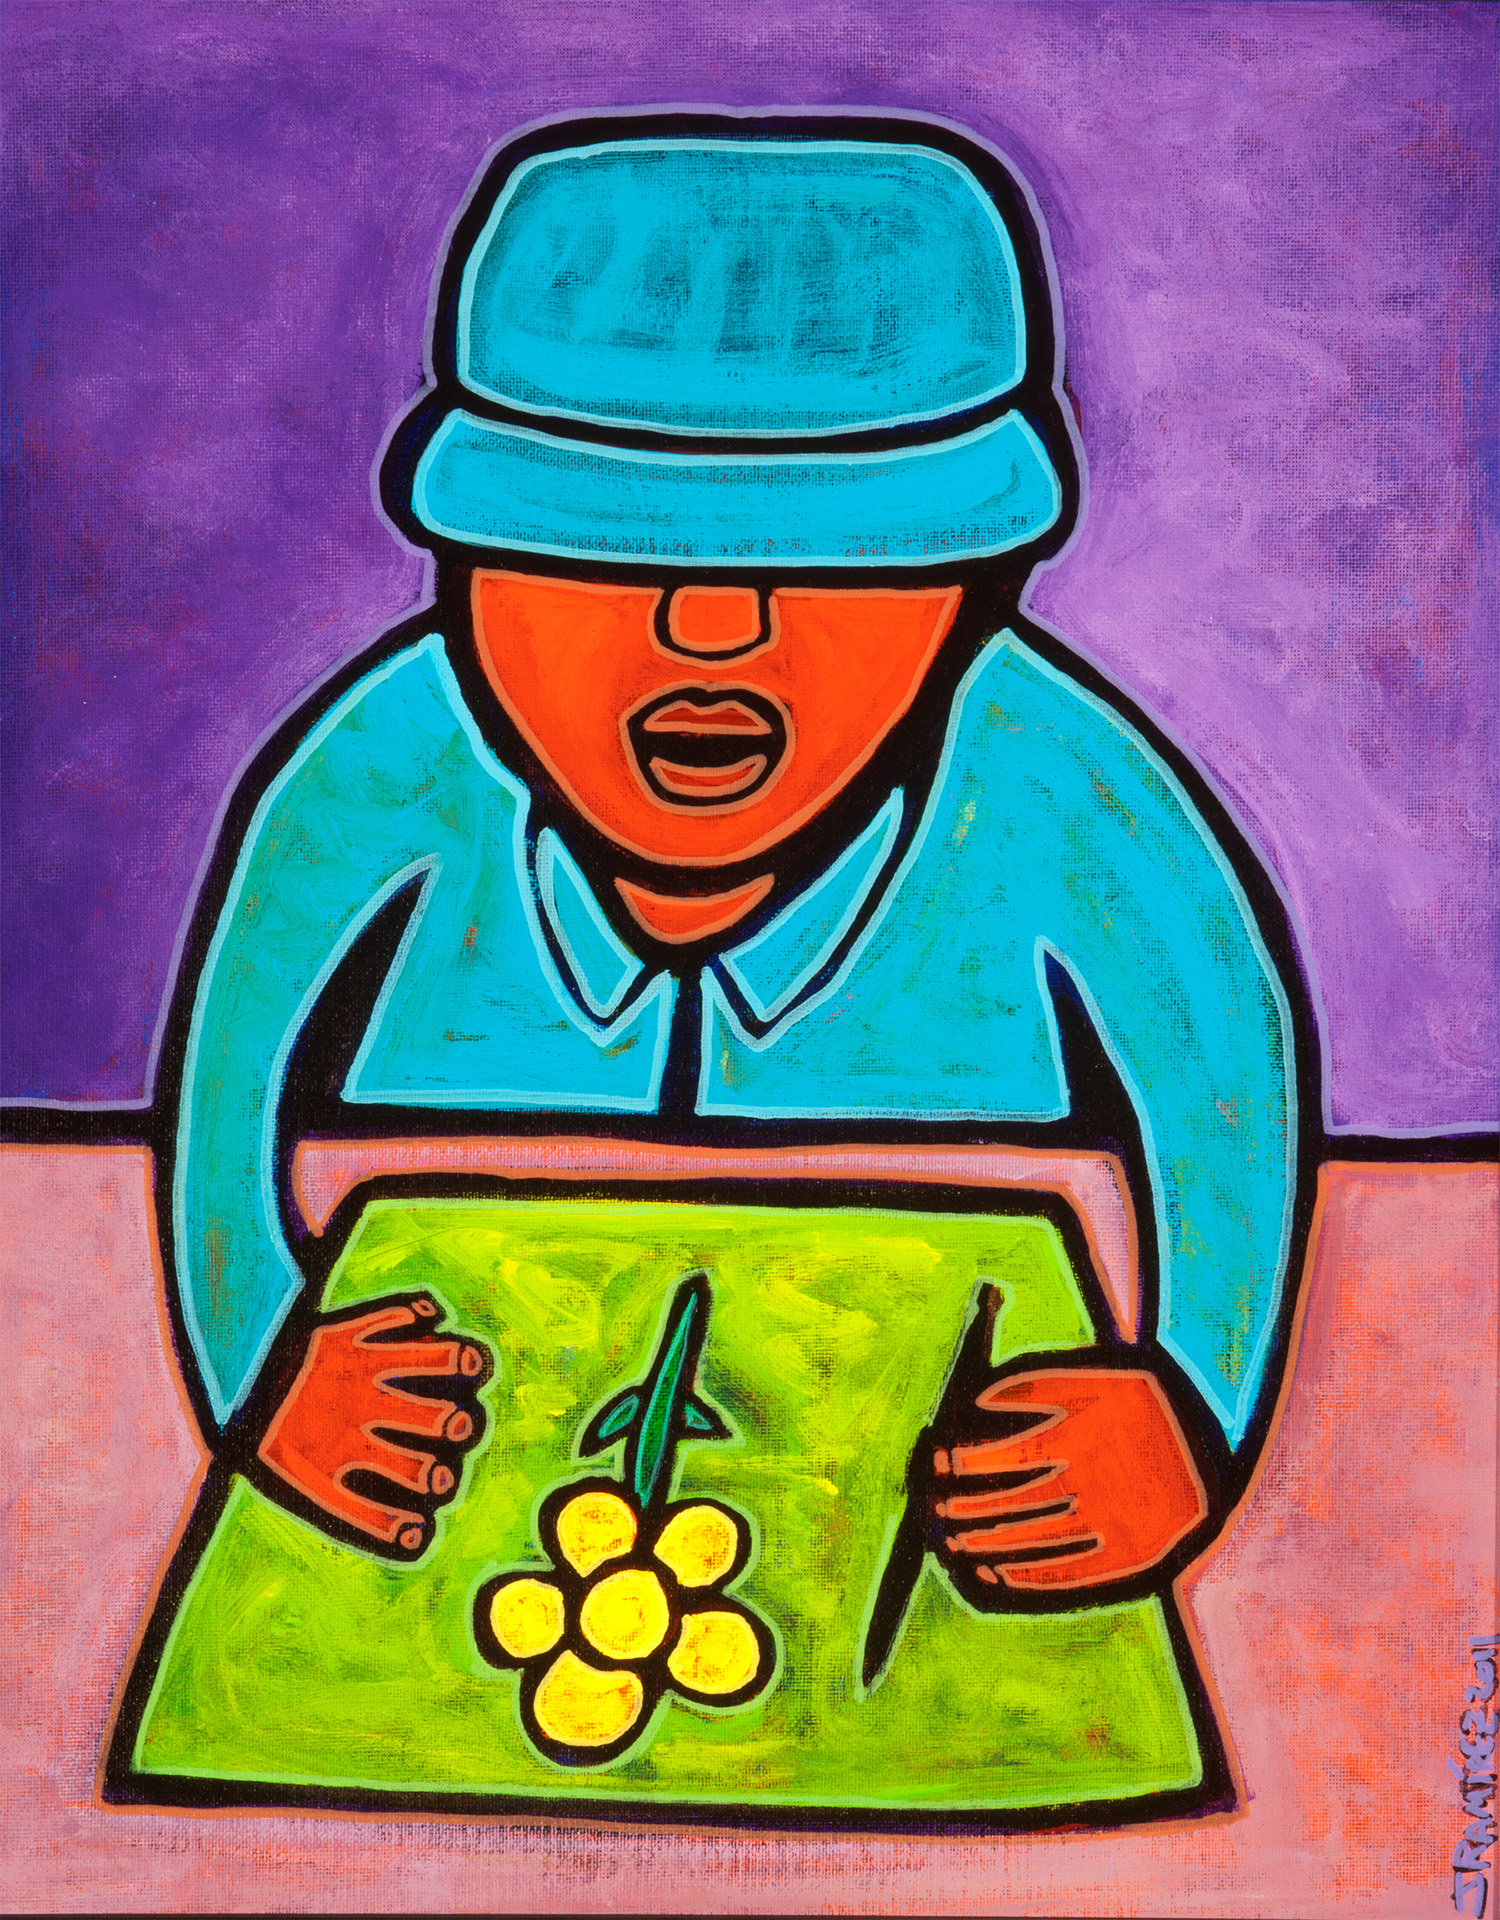 mayan boy from the pico, 2011, 18x22